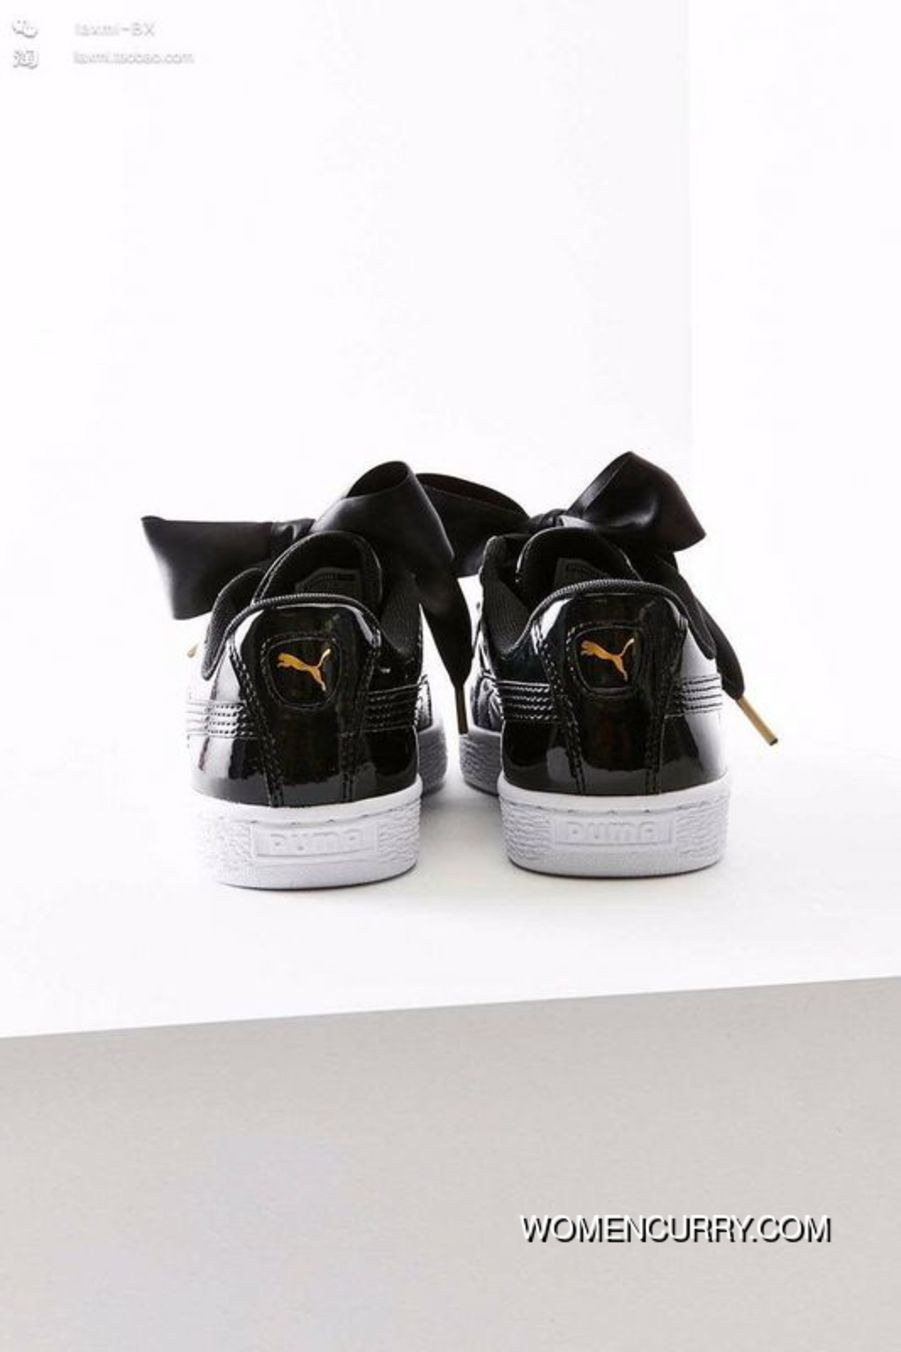 953784b9c83 Puma Suede Heart Patent Donna Scarpe Black White Women Cheap To Buy ...